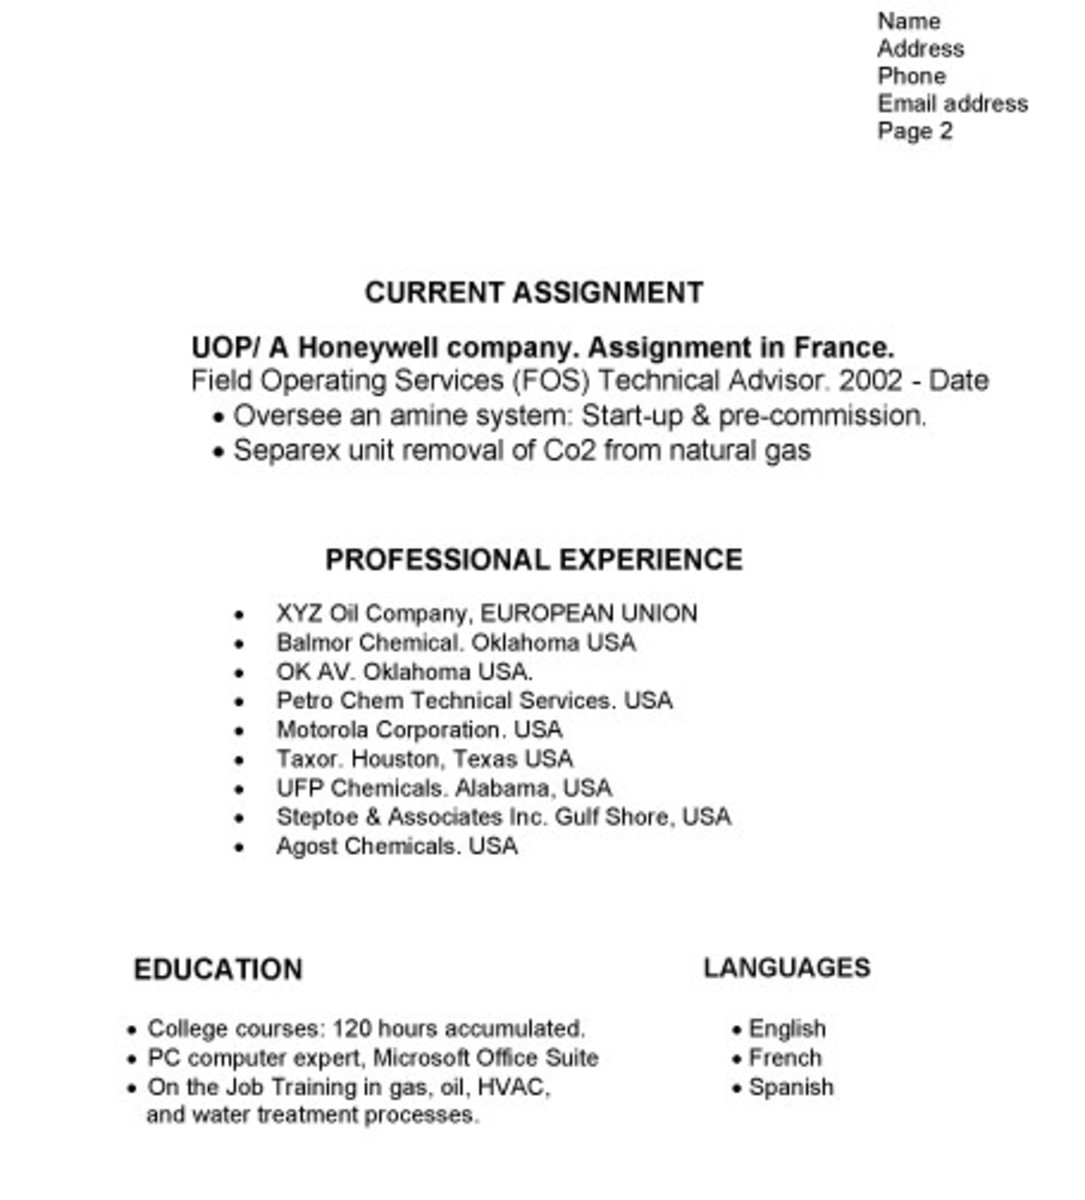 school leaver job application cover letter example